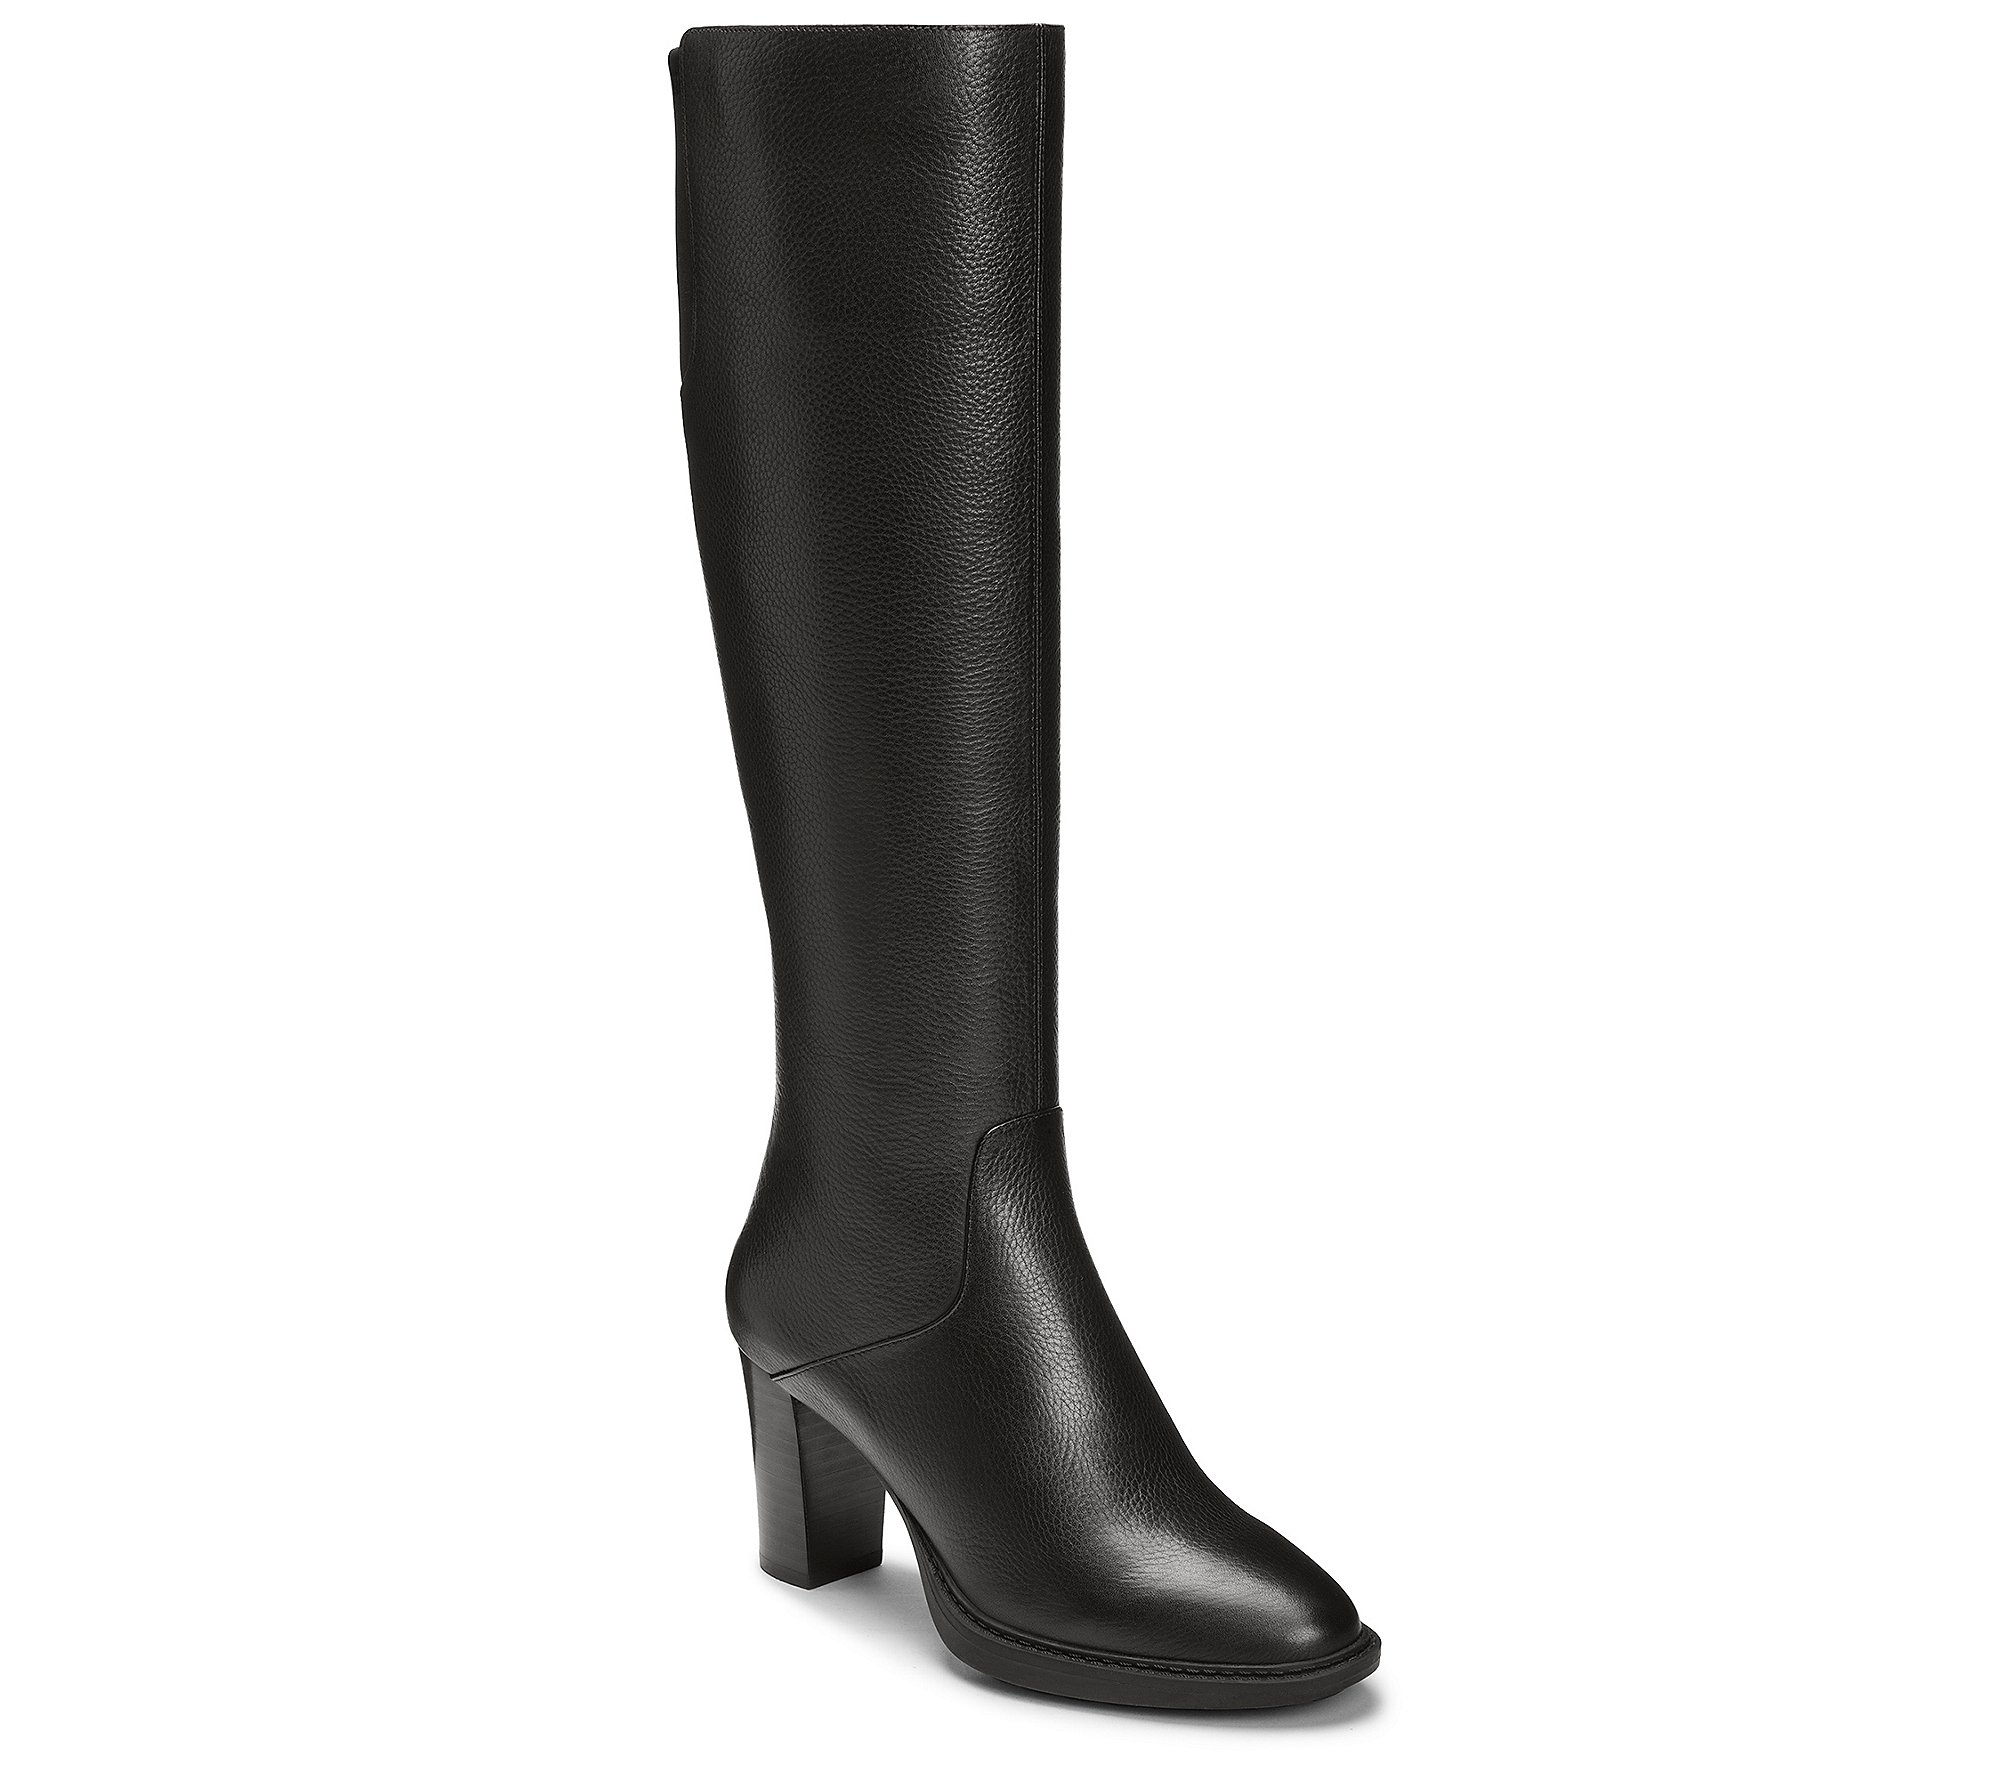 Aerosoles Women's Real Fact Knee High Boot, Black Leather, 8 M US by Aerosoles